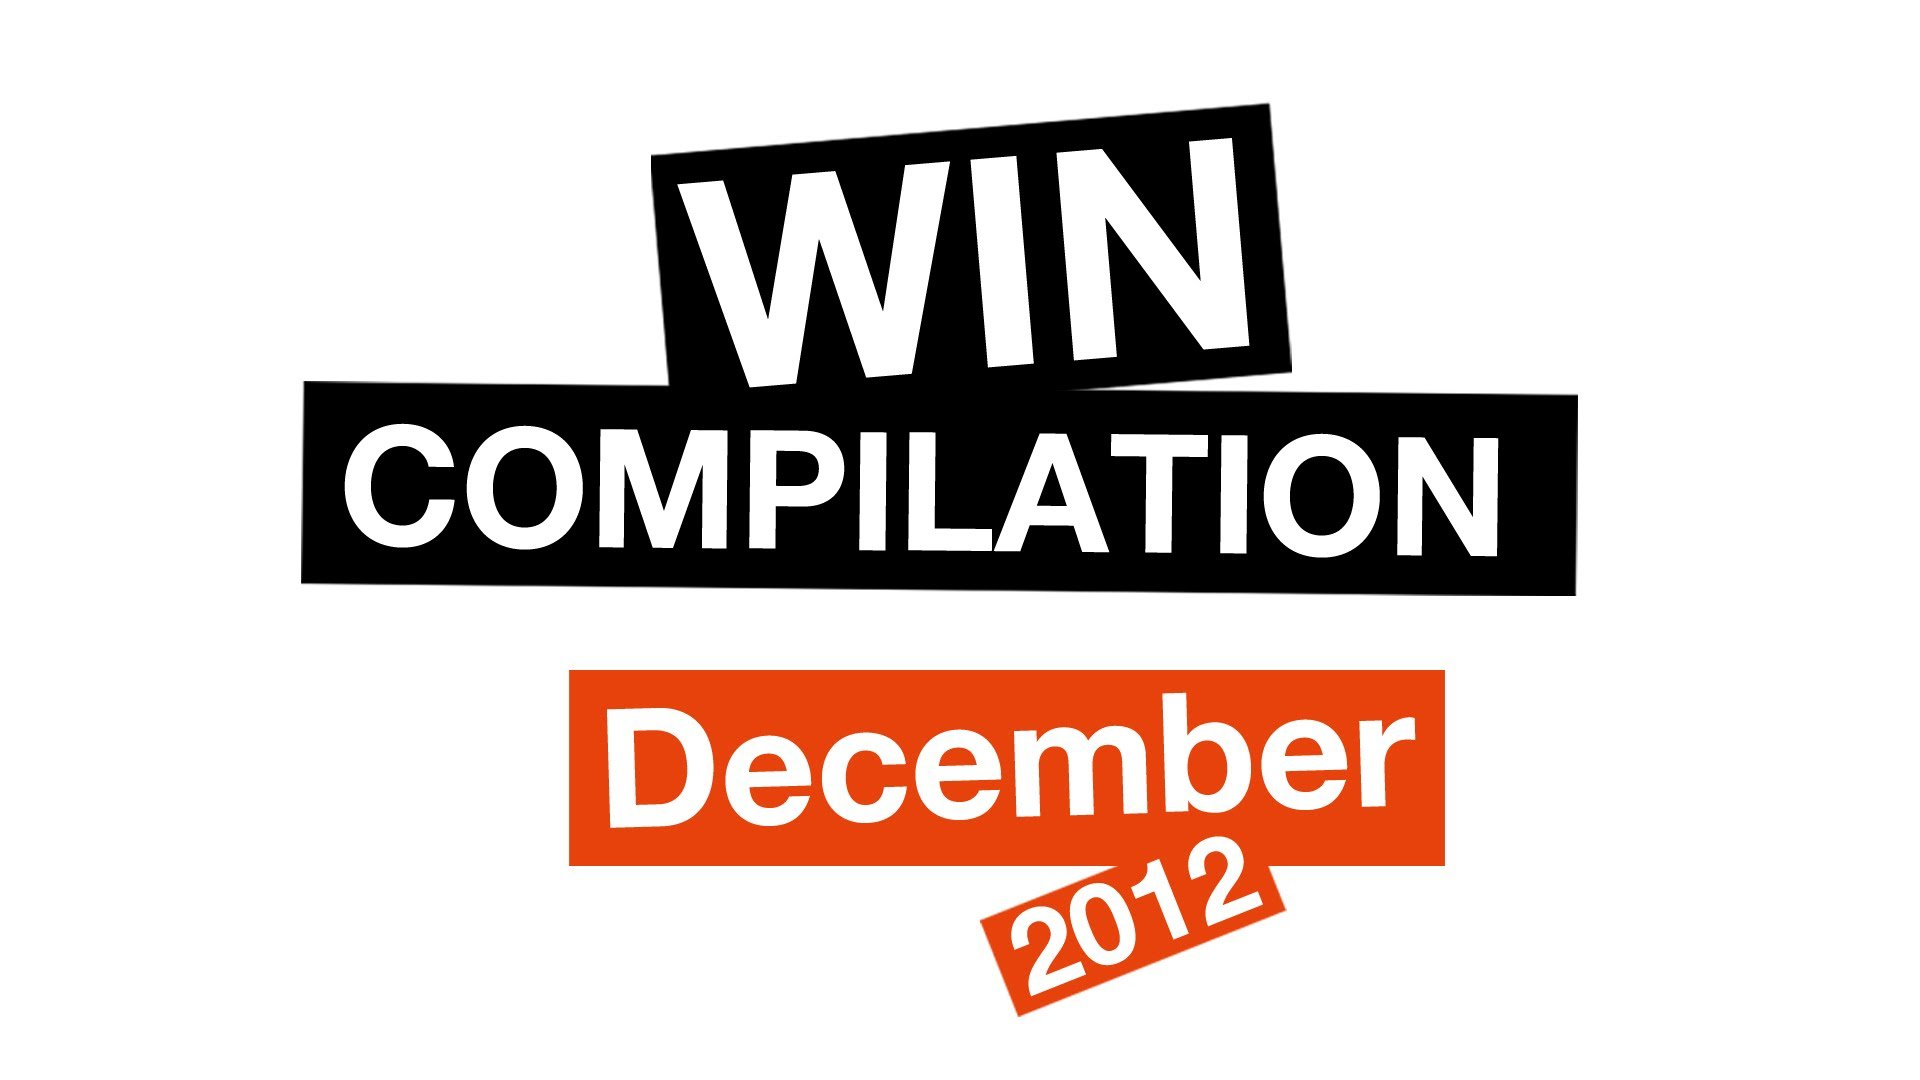 WIN Compilation December 2012